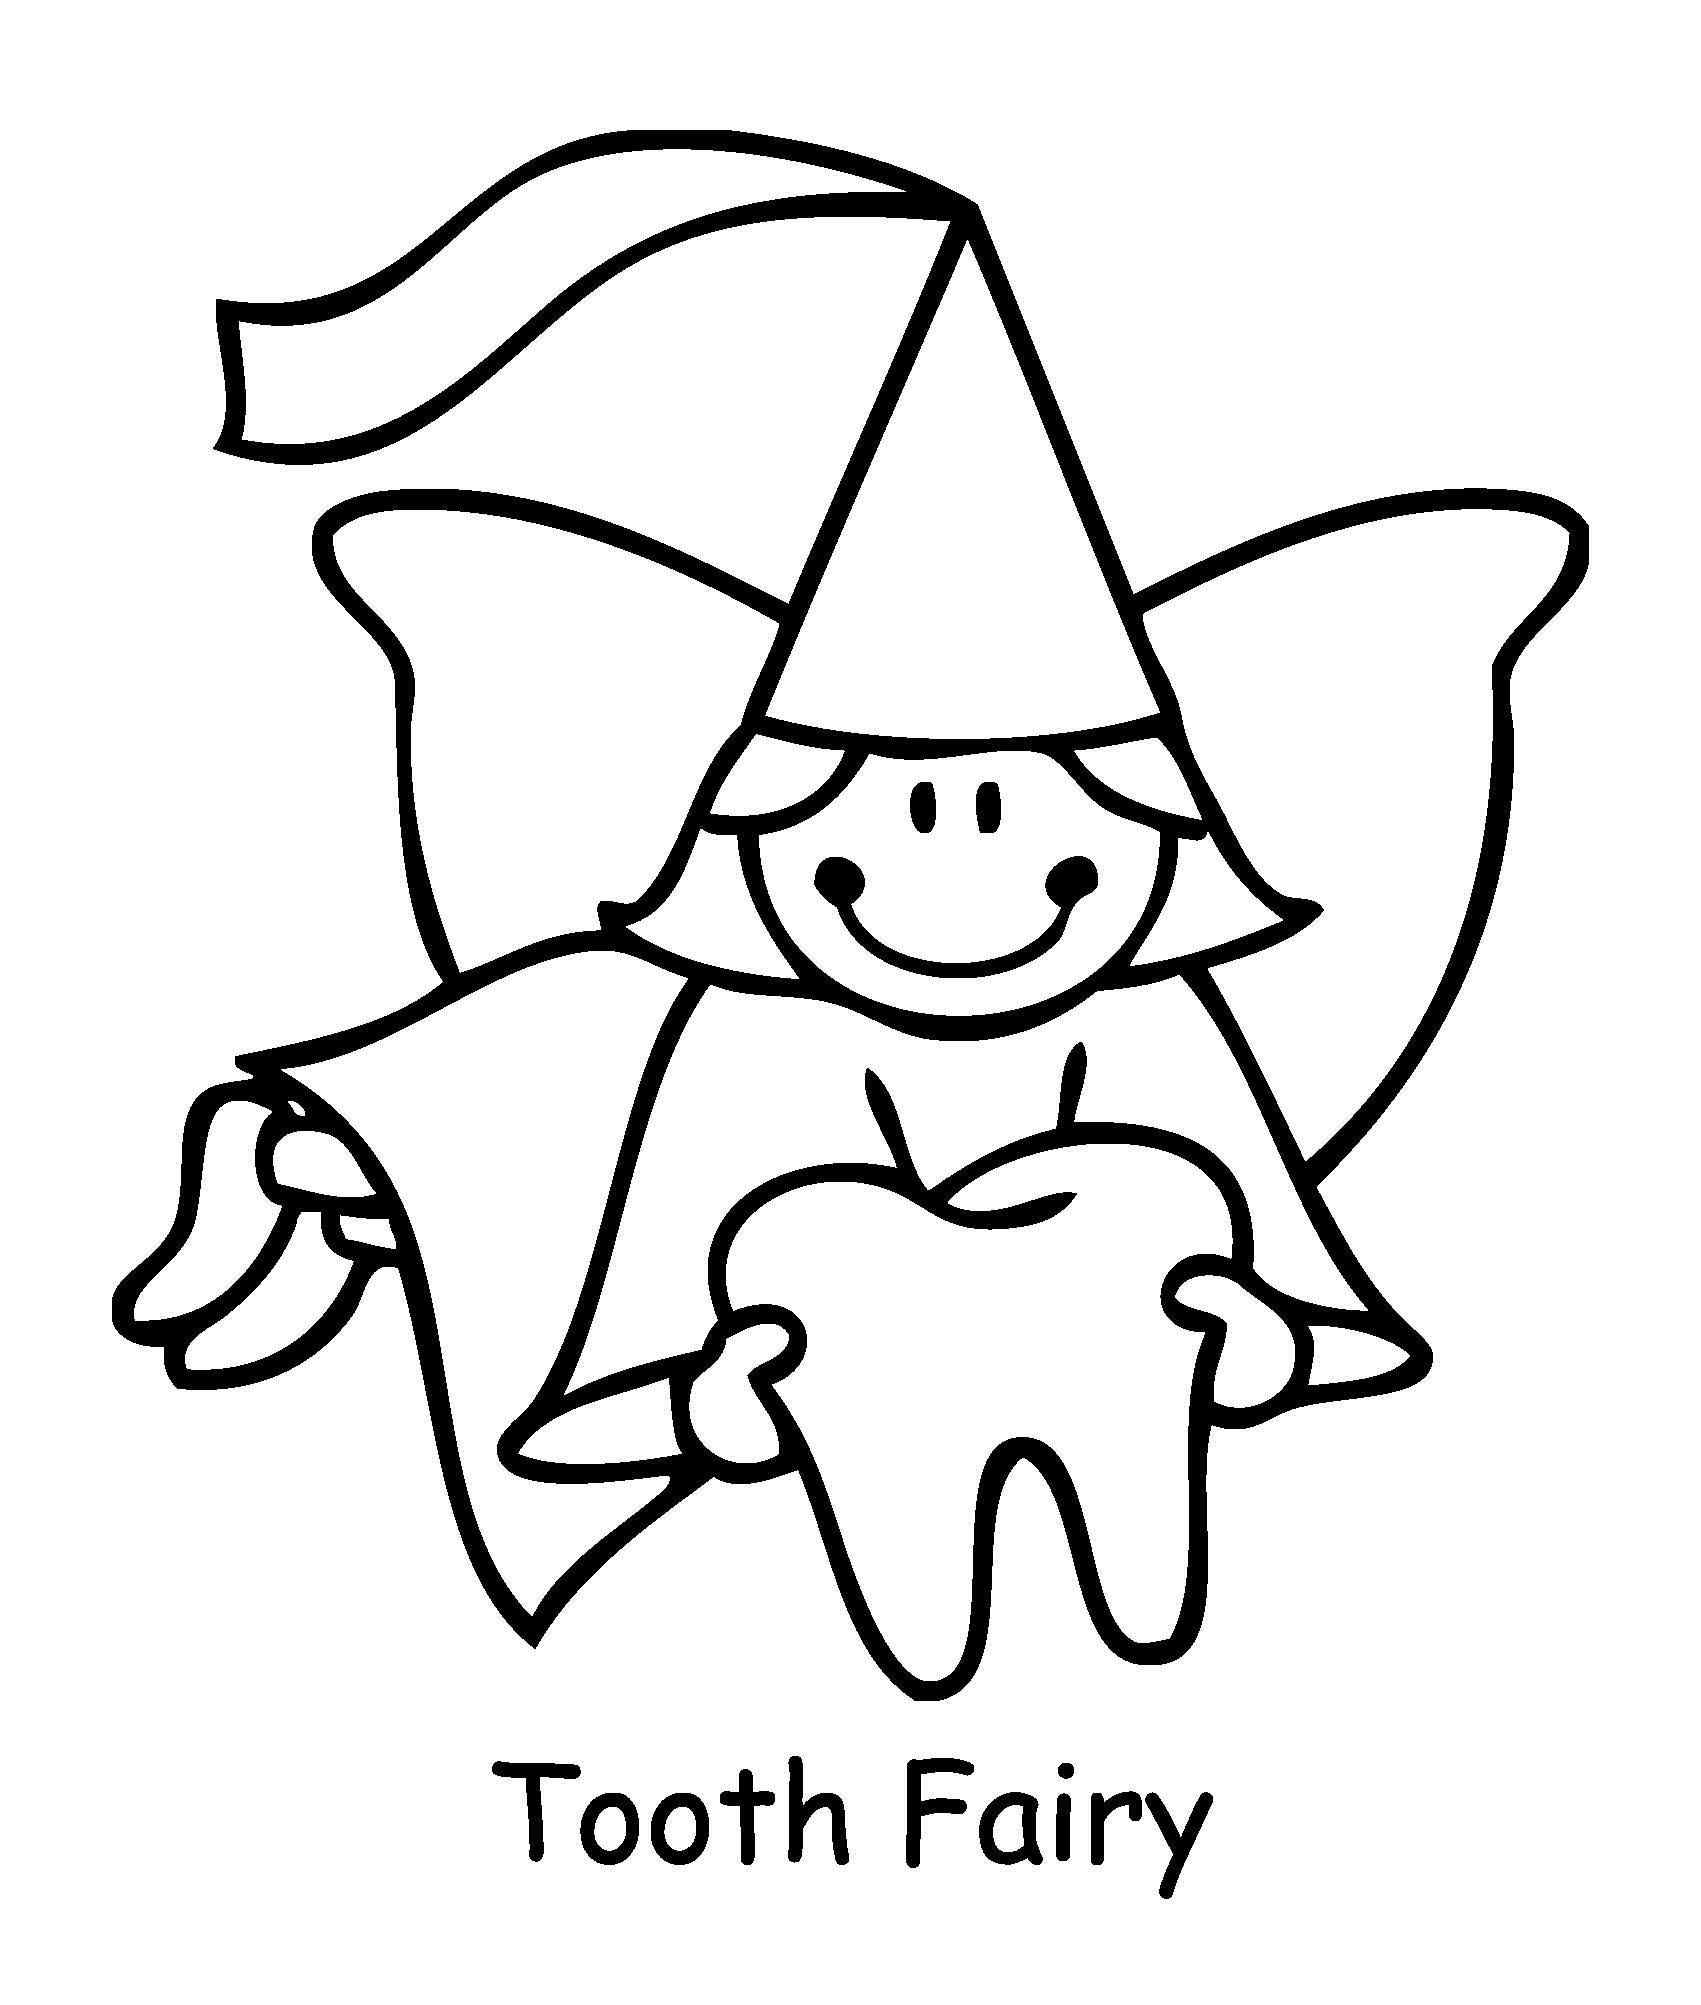 Coloring Pages for Tooth Fairy Kindergarten Pinterest Tooth